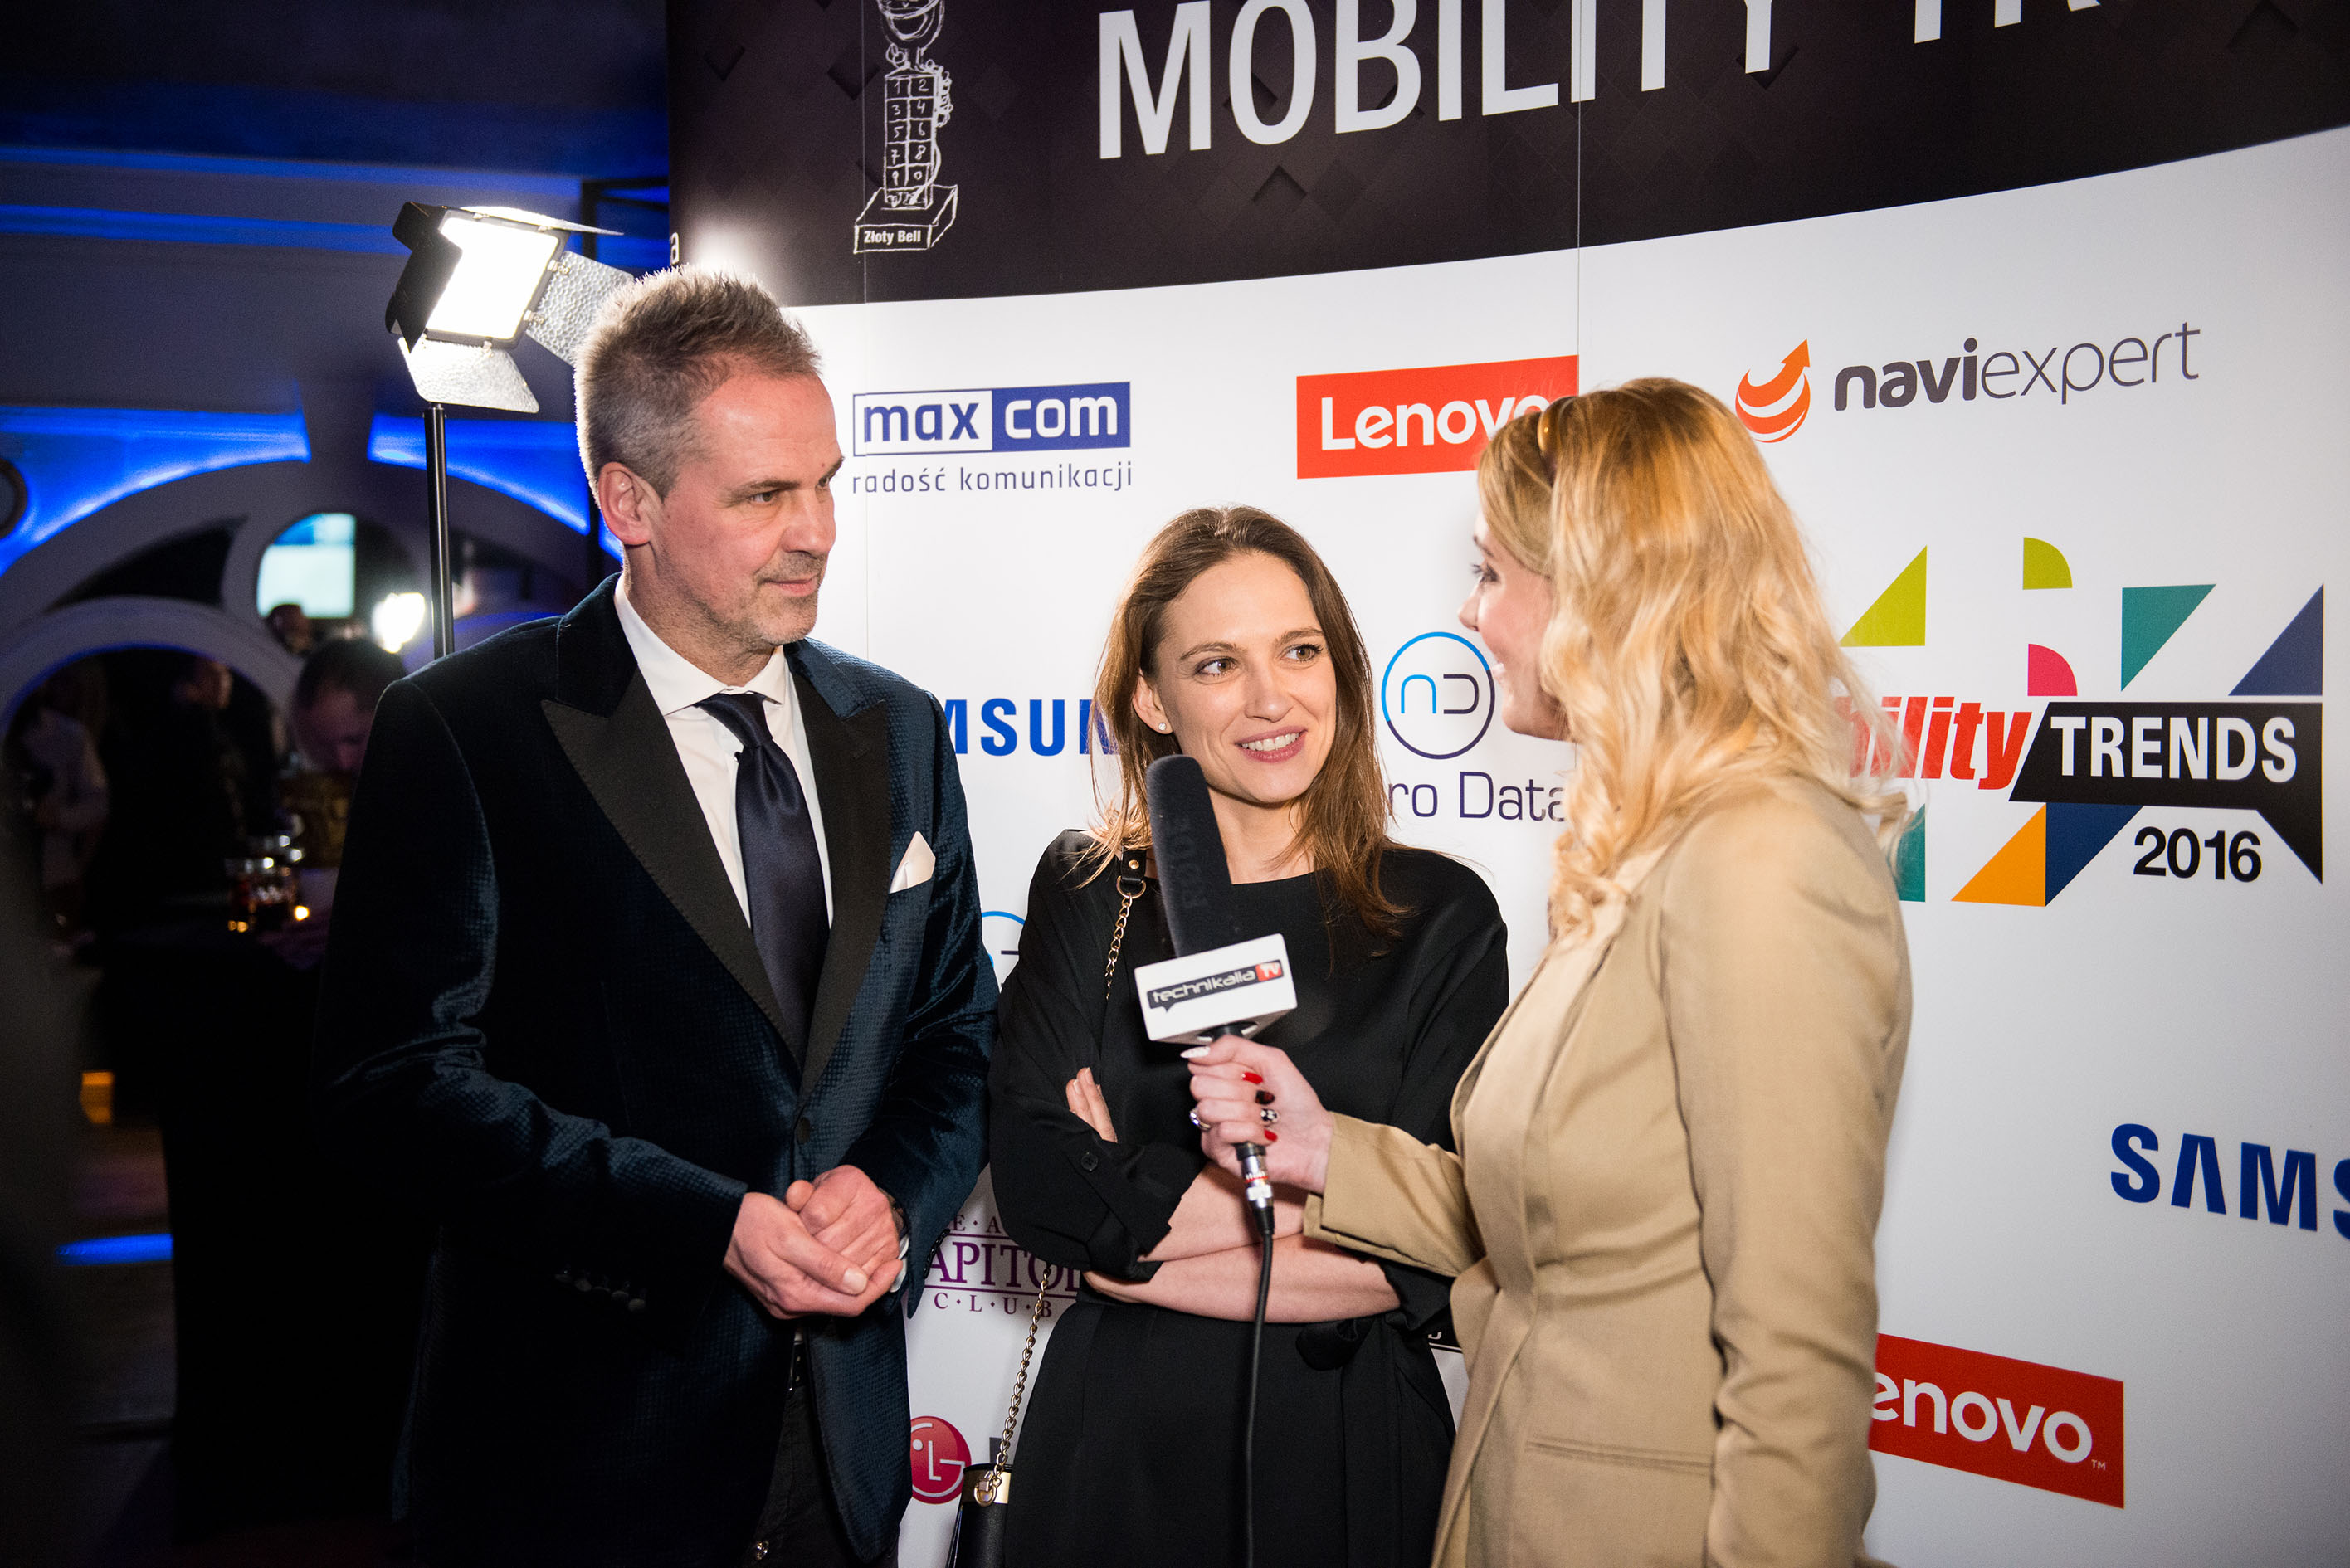 Gala Mobility Trends 2016-1